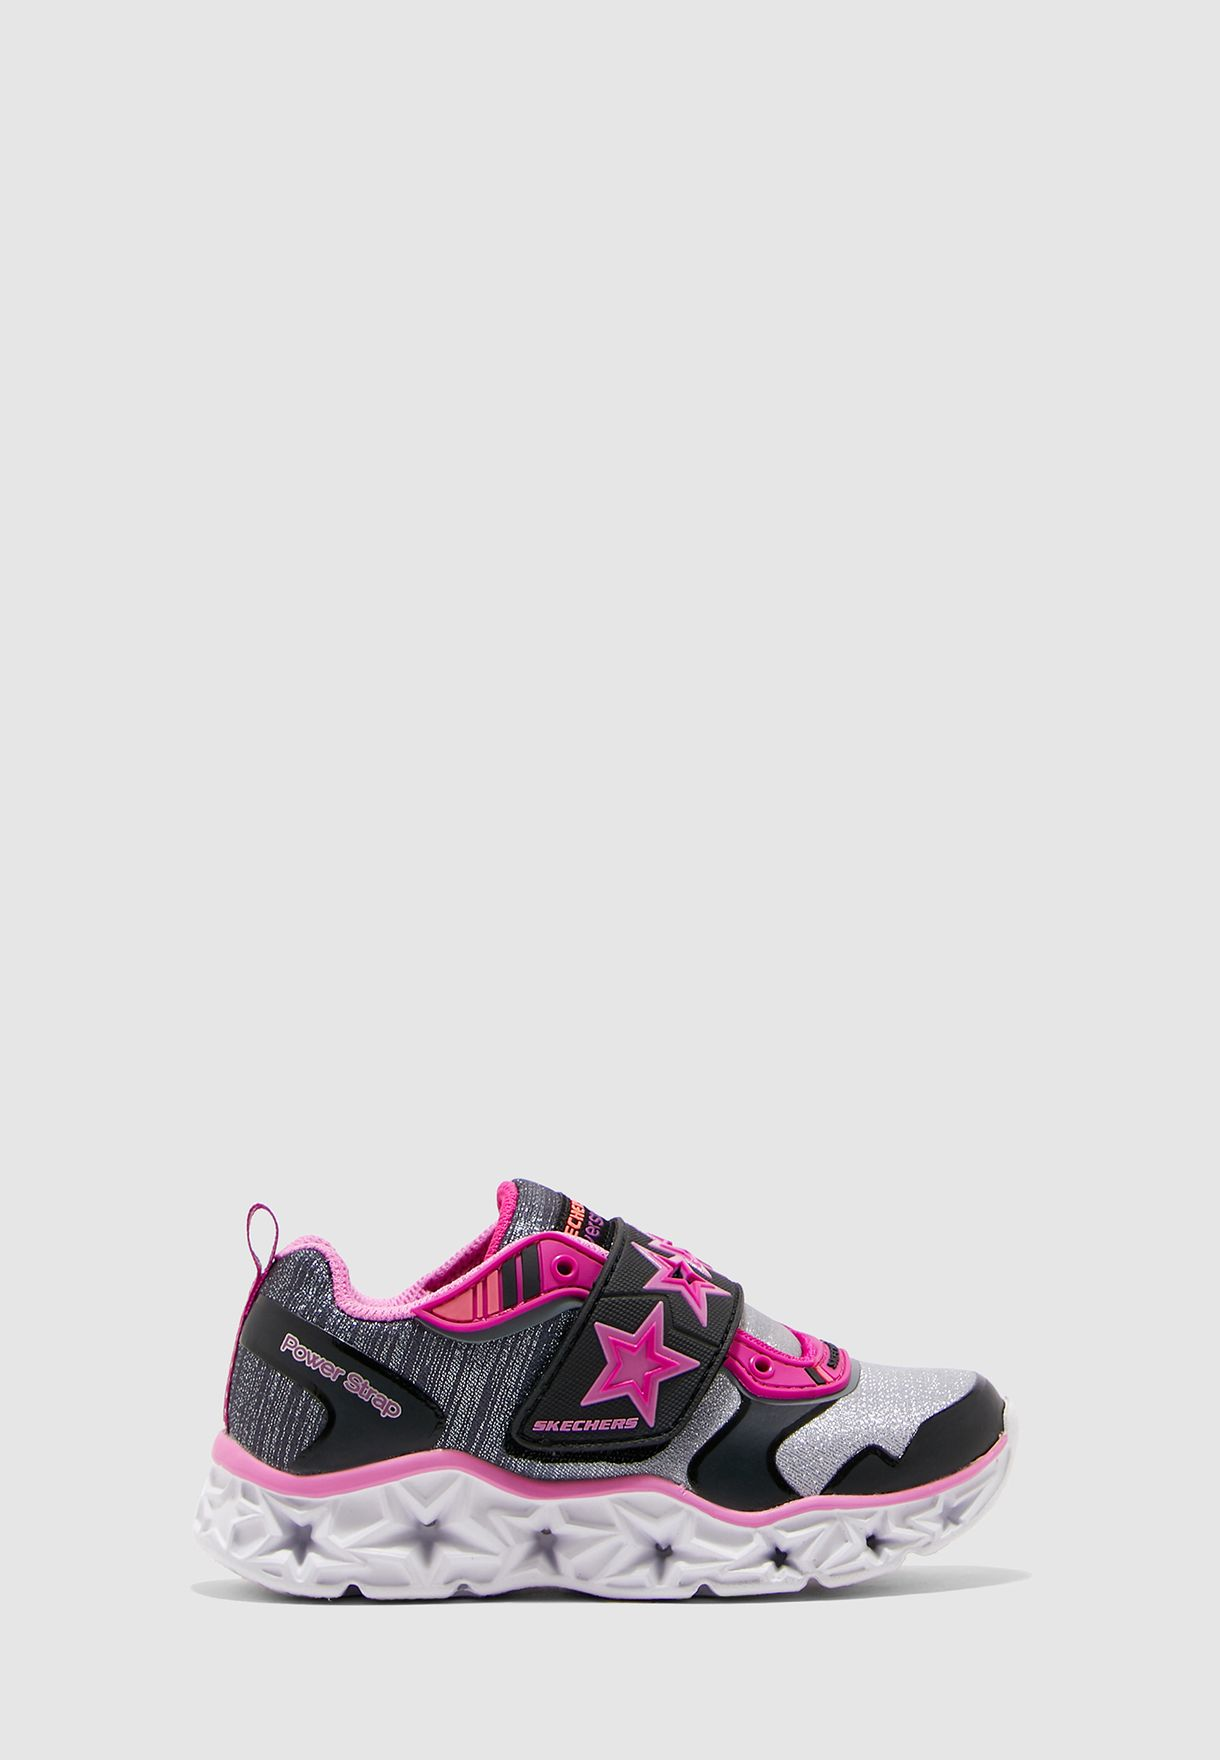 skechers power strap Sale,up to 47